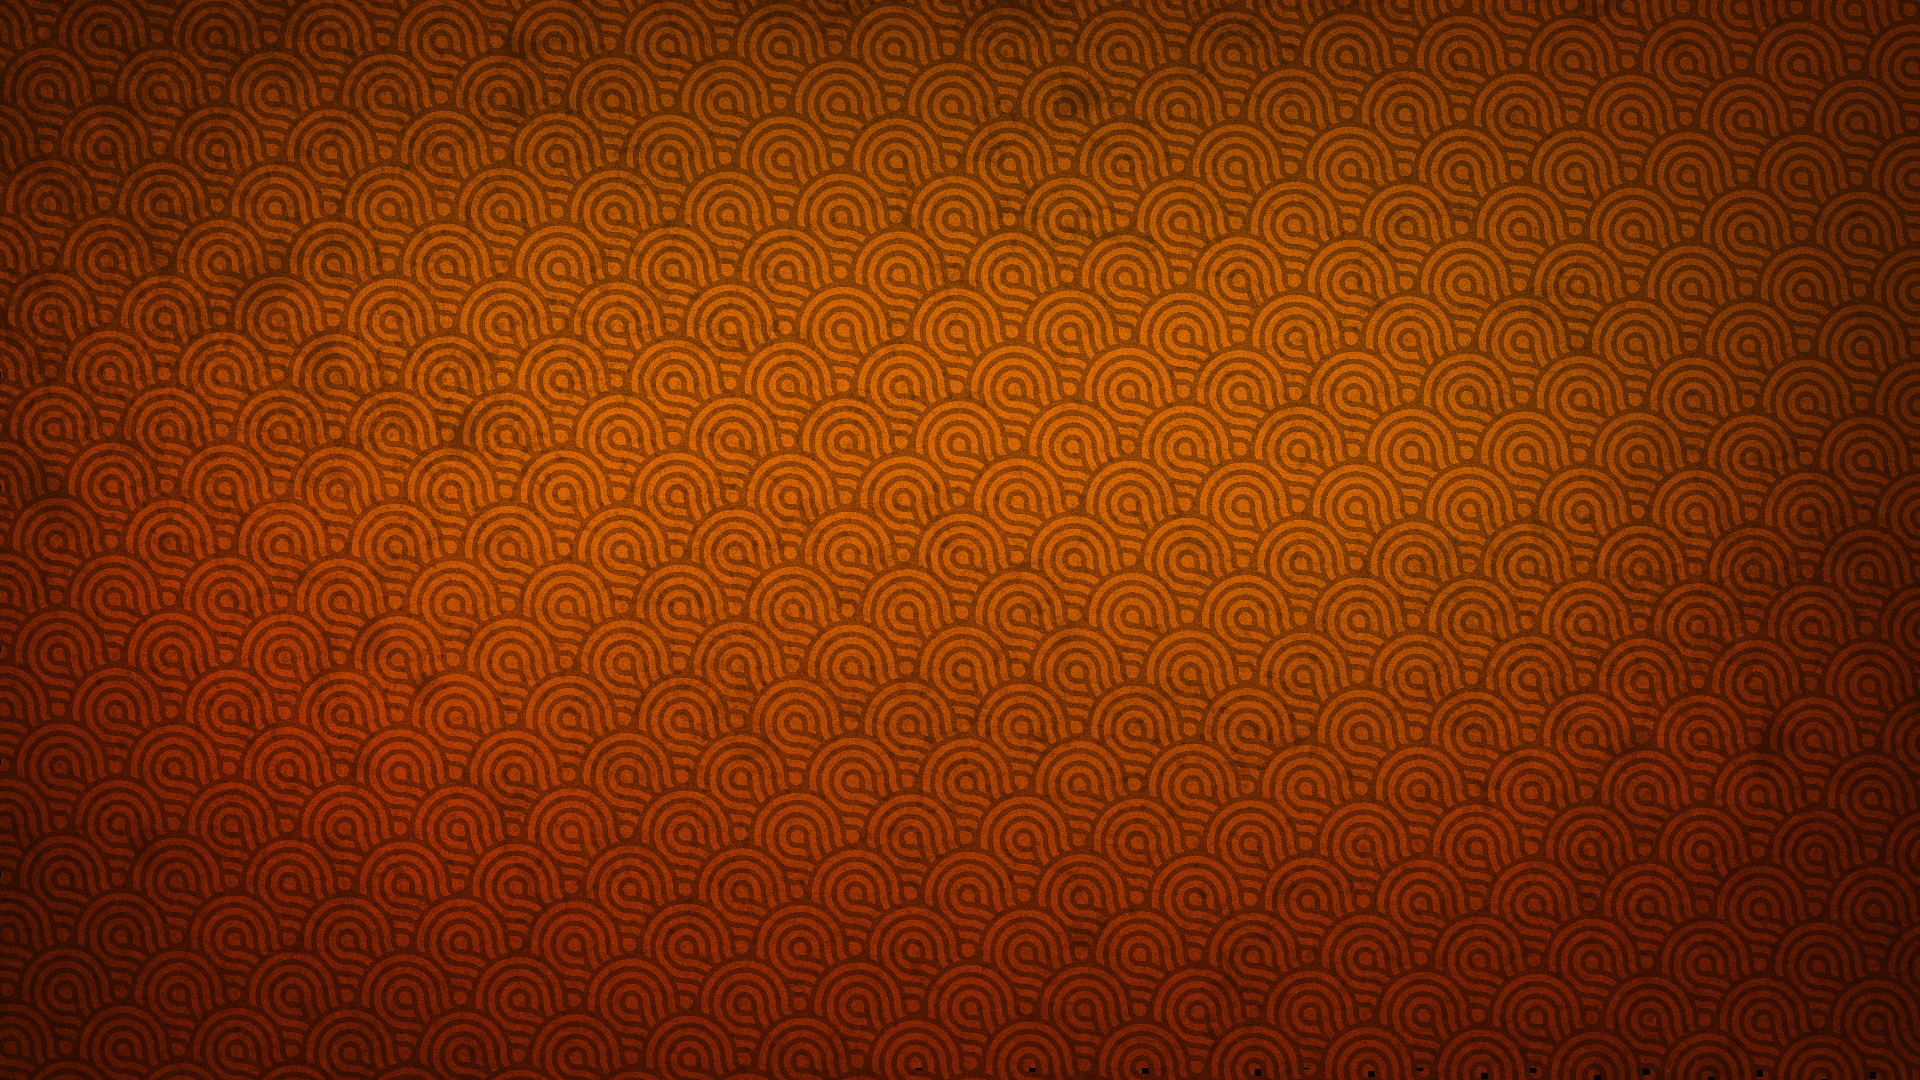 Unduh 6700 Koleksi Background Orange Elegant Terbaik